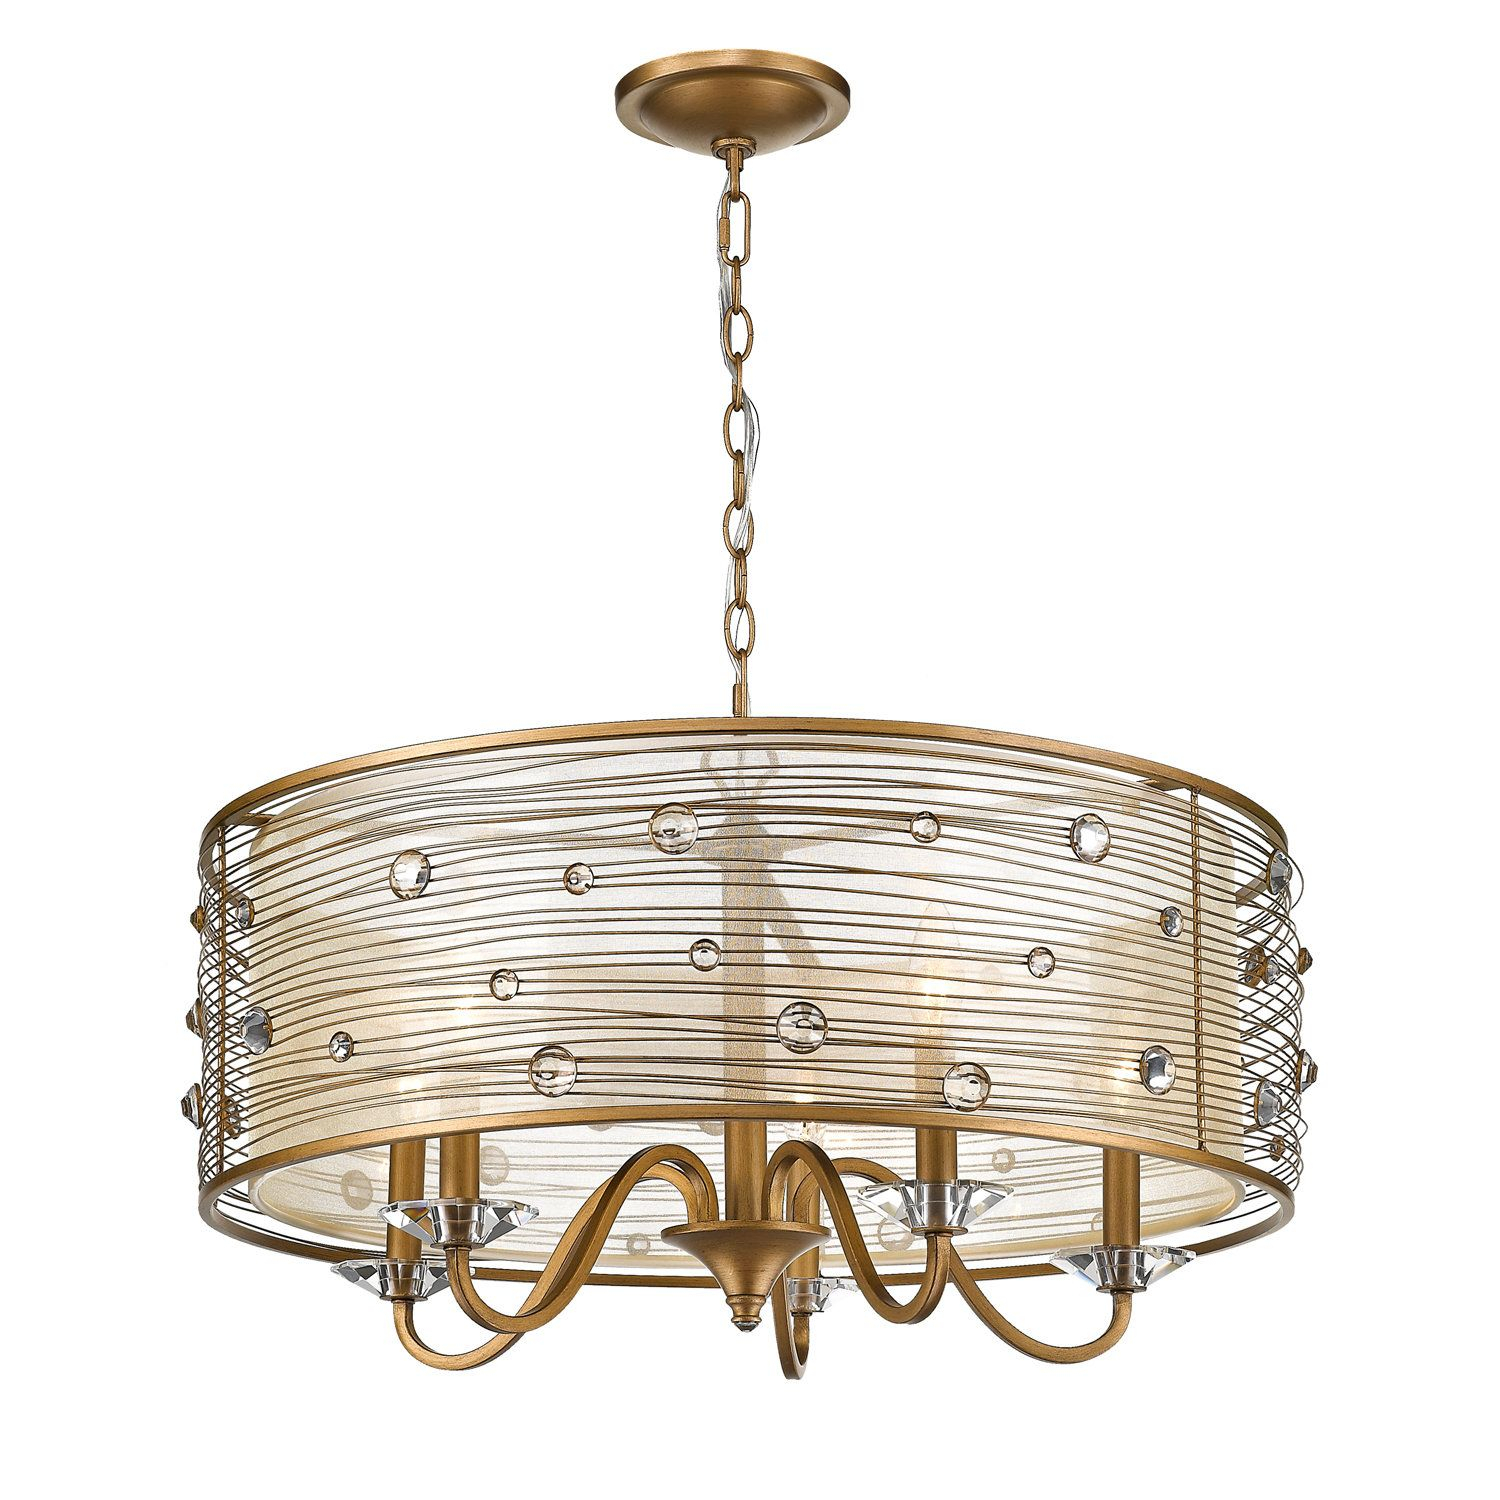 Hermione 5 Light Drum Chandelier | Products | Chandelier In Hermione 5 Light Drum Chandeliers (View 5 of 30)